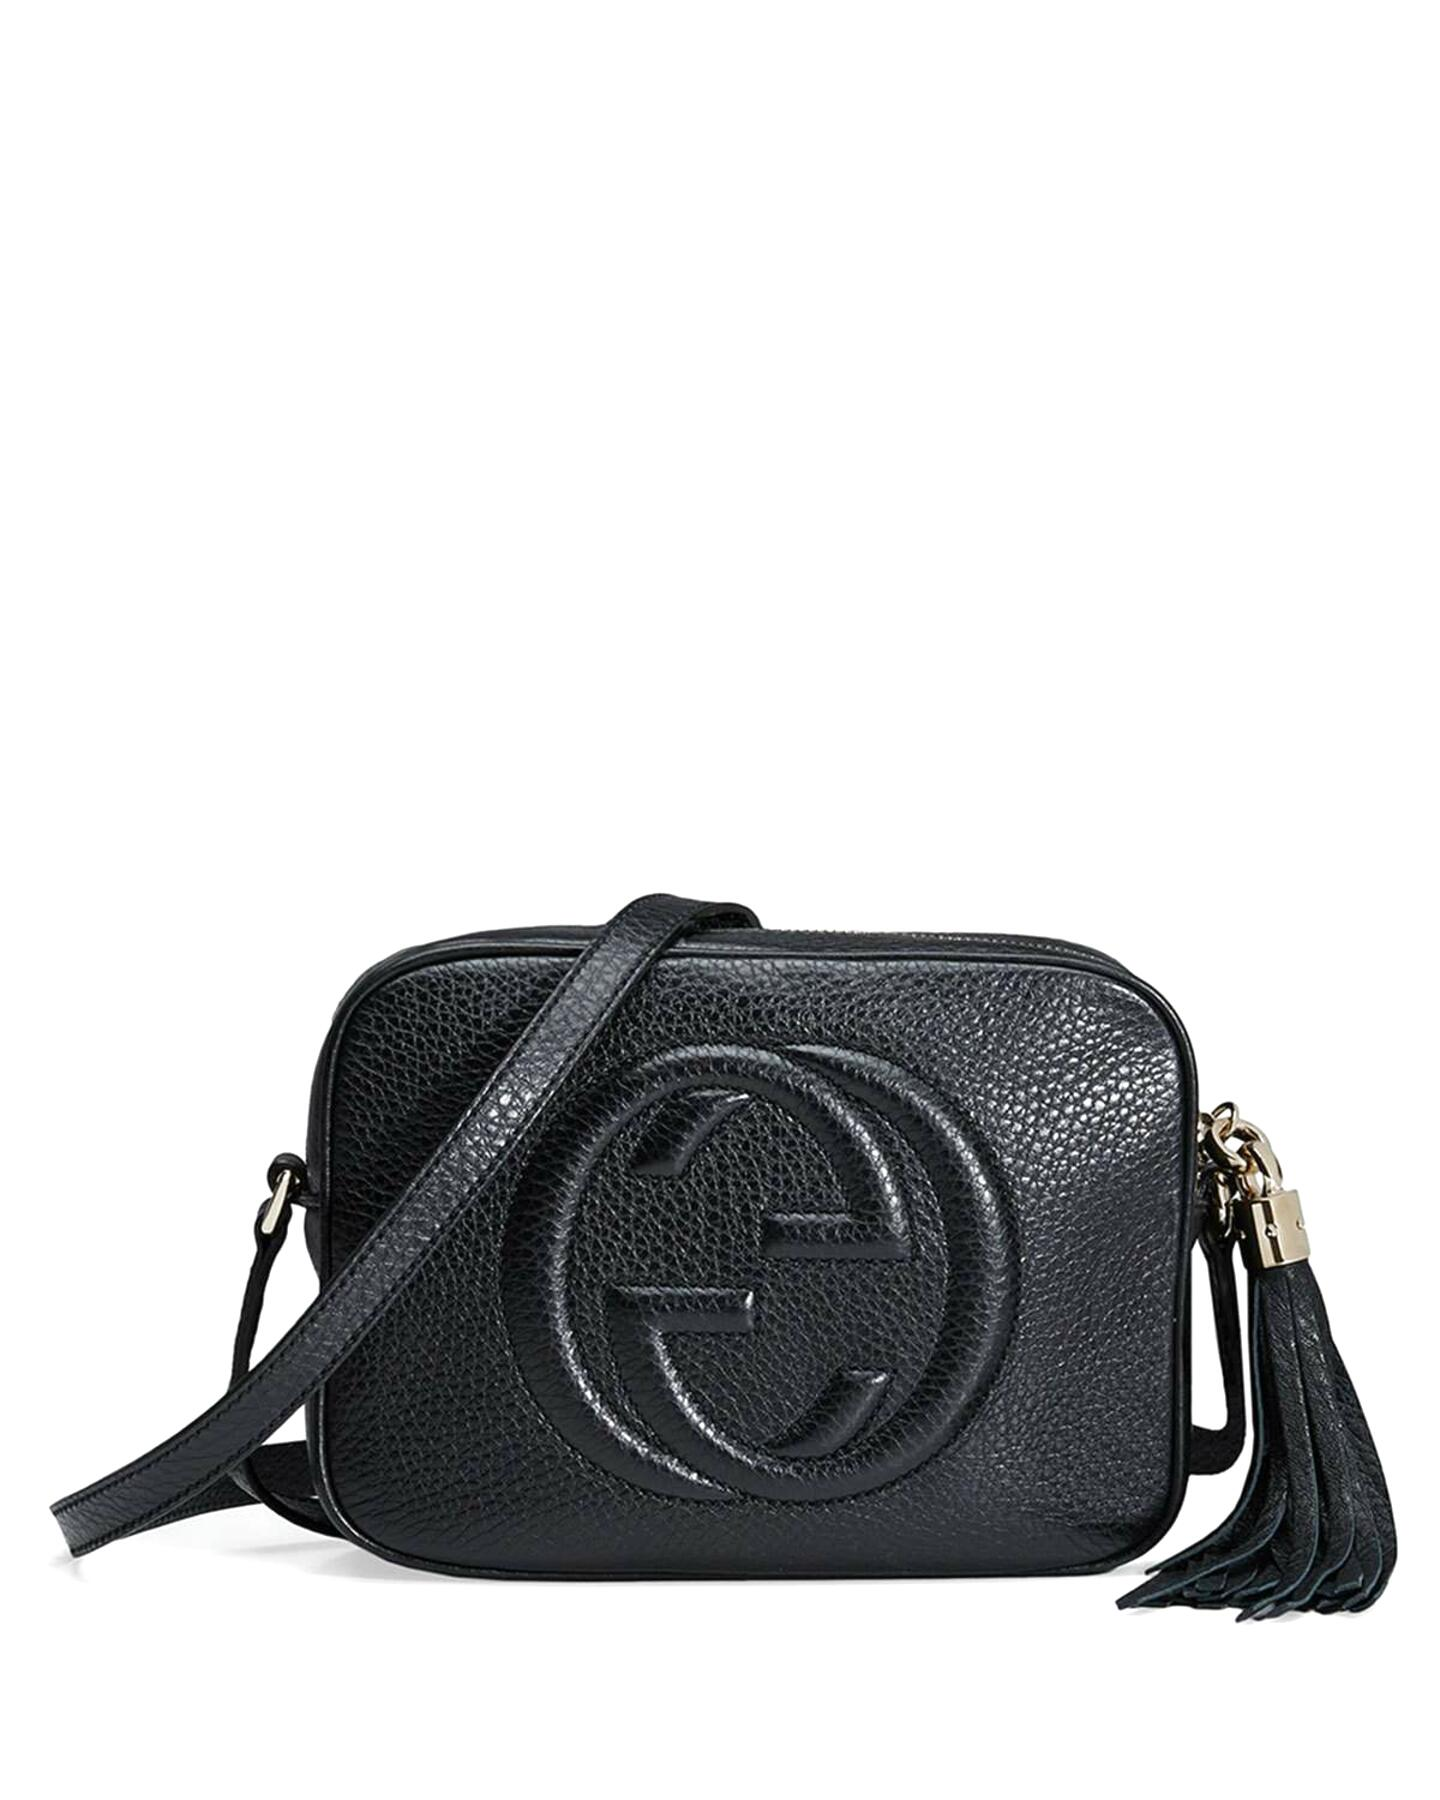 gucci soho disco bag for sale